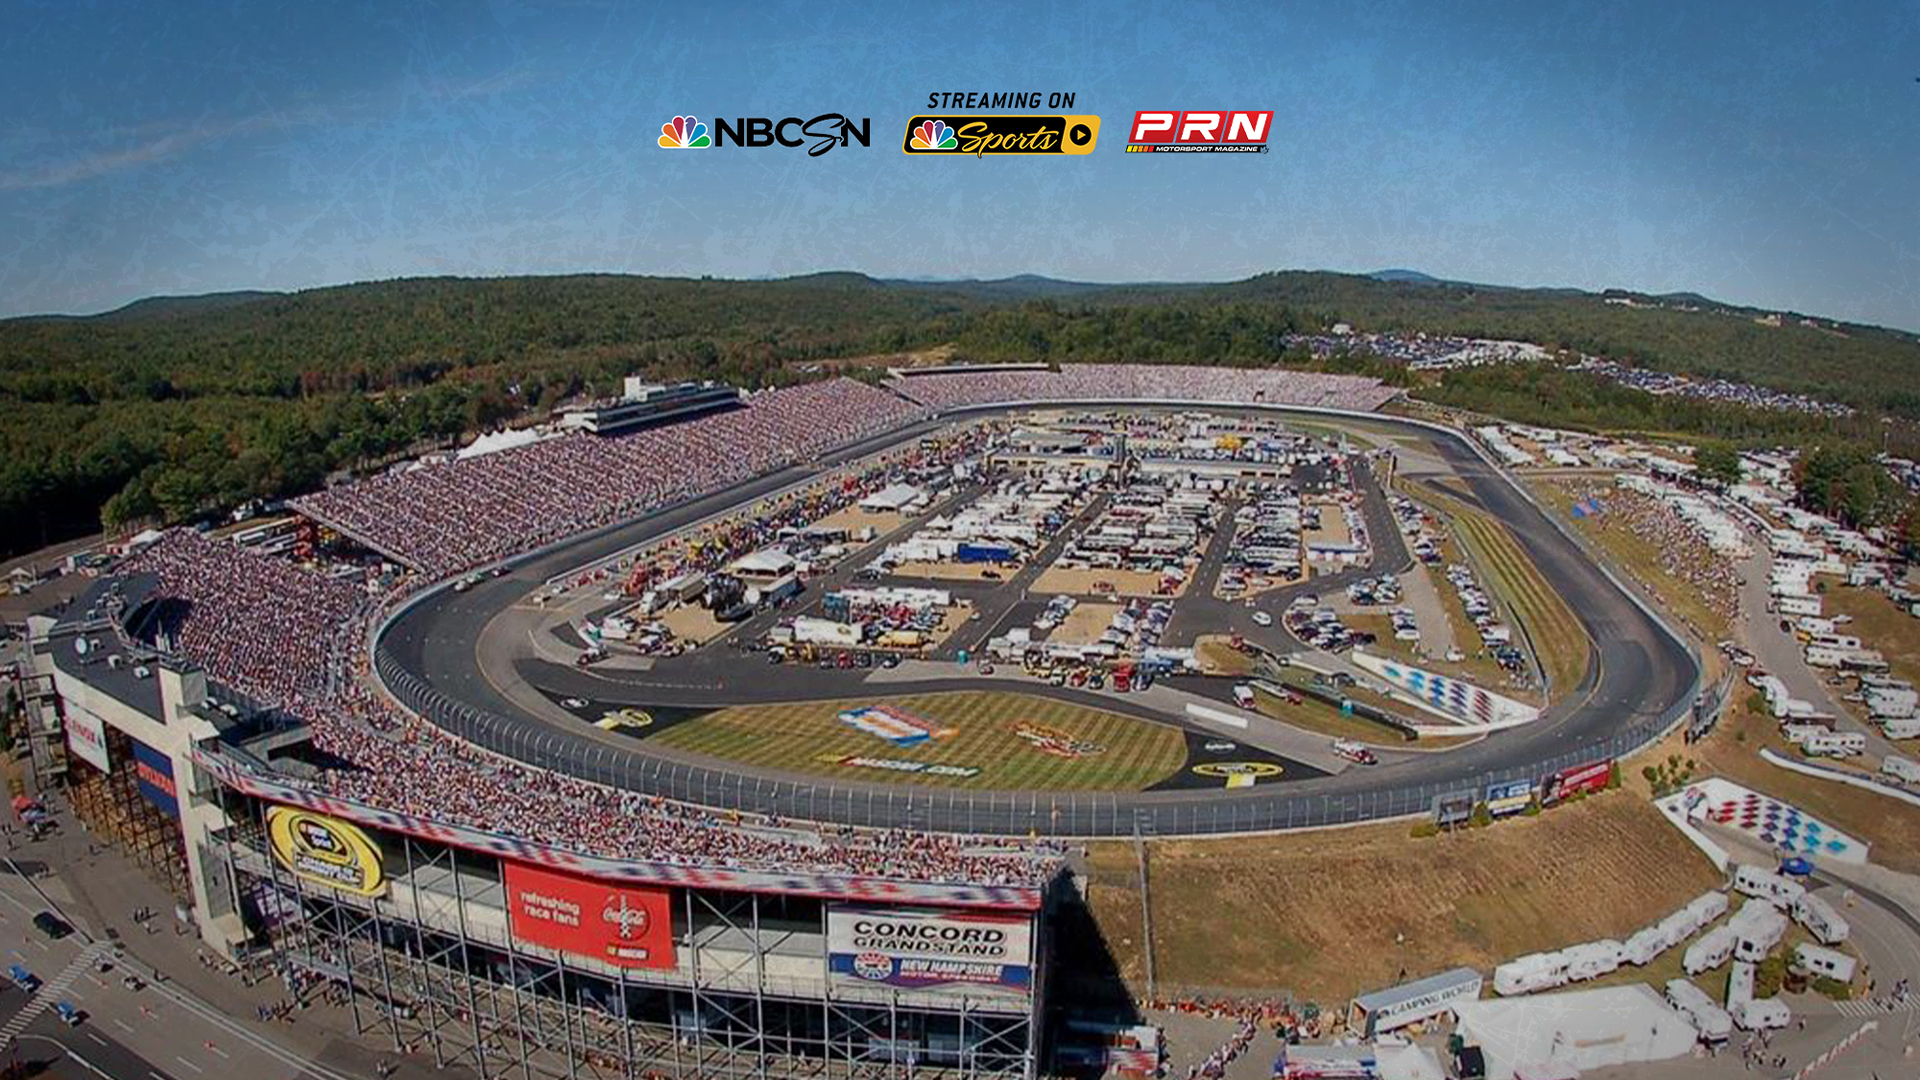 Ambetter Get Vaccinated 200 from NHMS